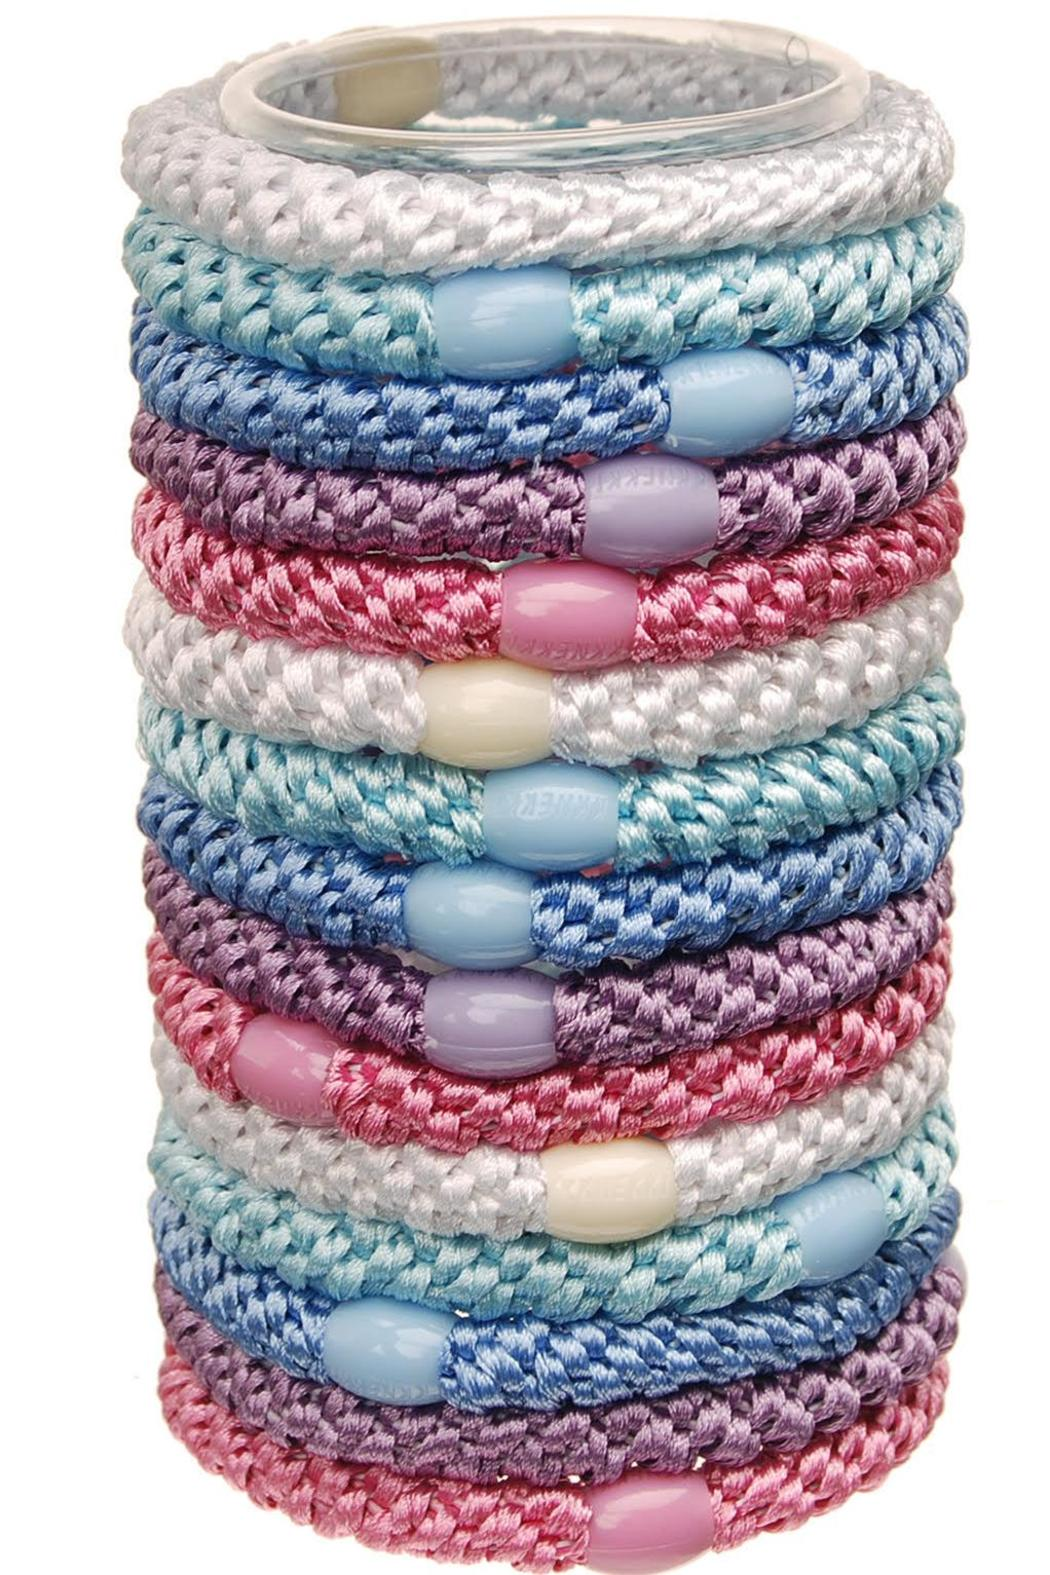 L Erikson Pastel Hair Ties From New Jersey By Gotham City